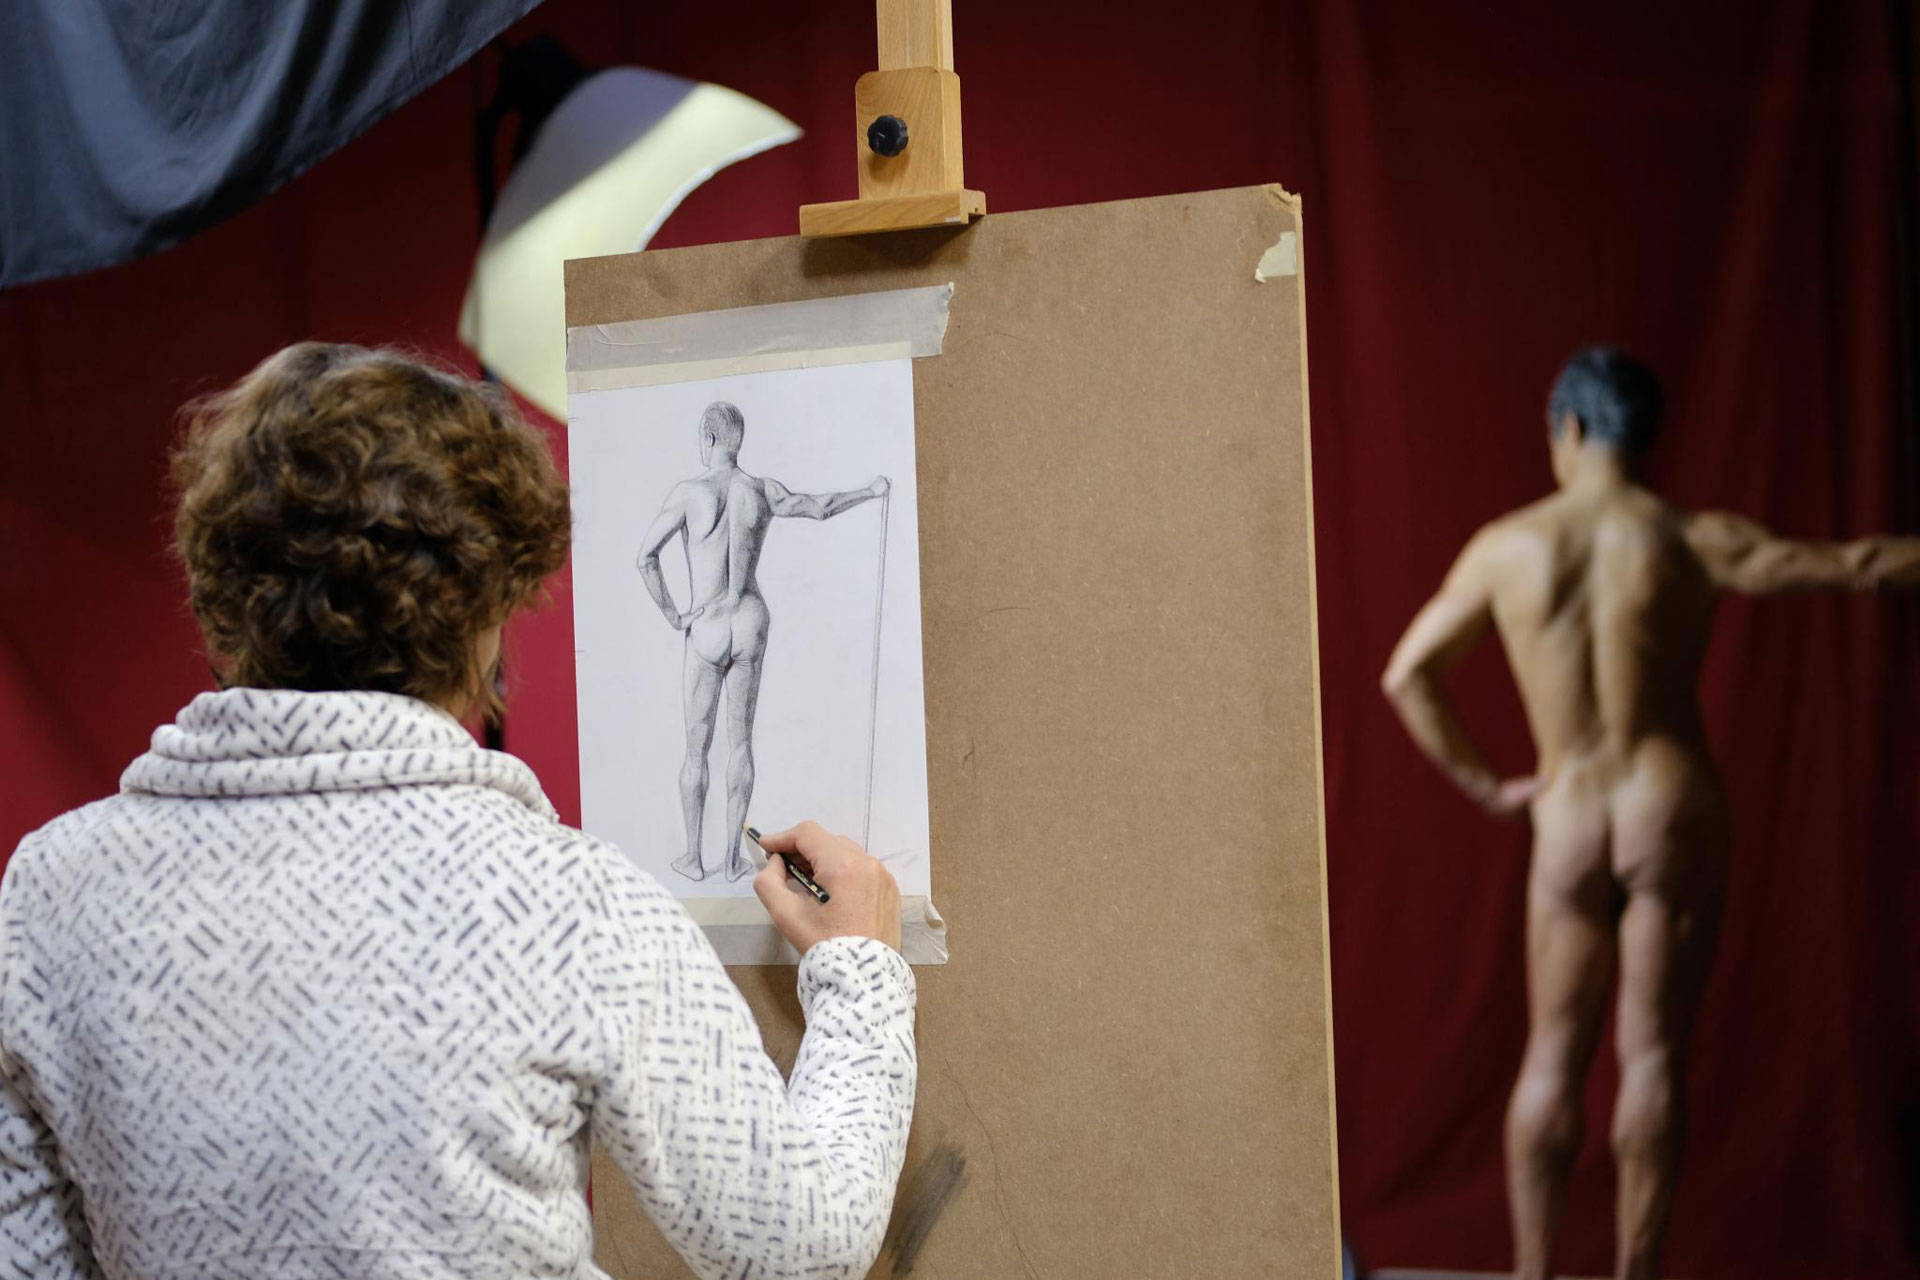 academy aktkurs zeichnung 02 - Drawing From Life or a Photo: Which Is Better?